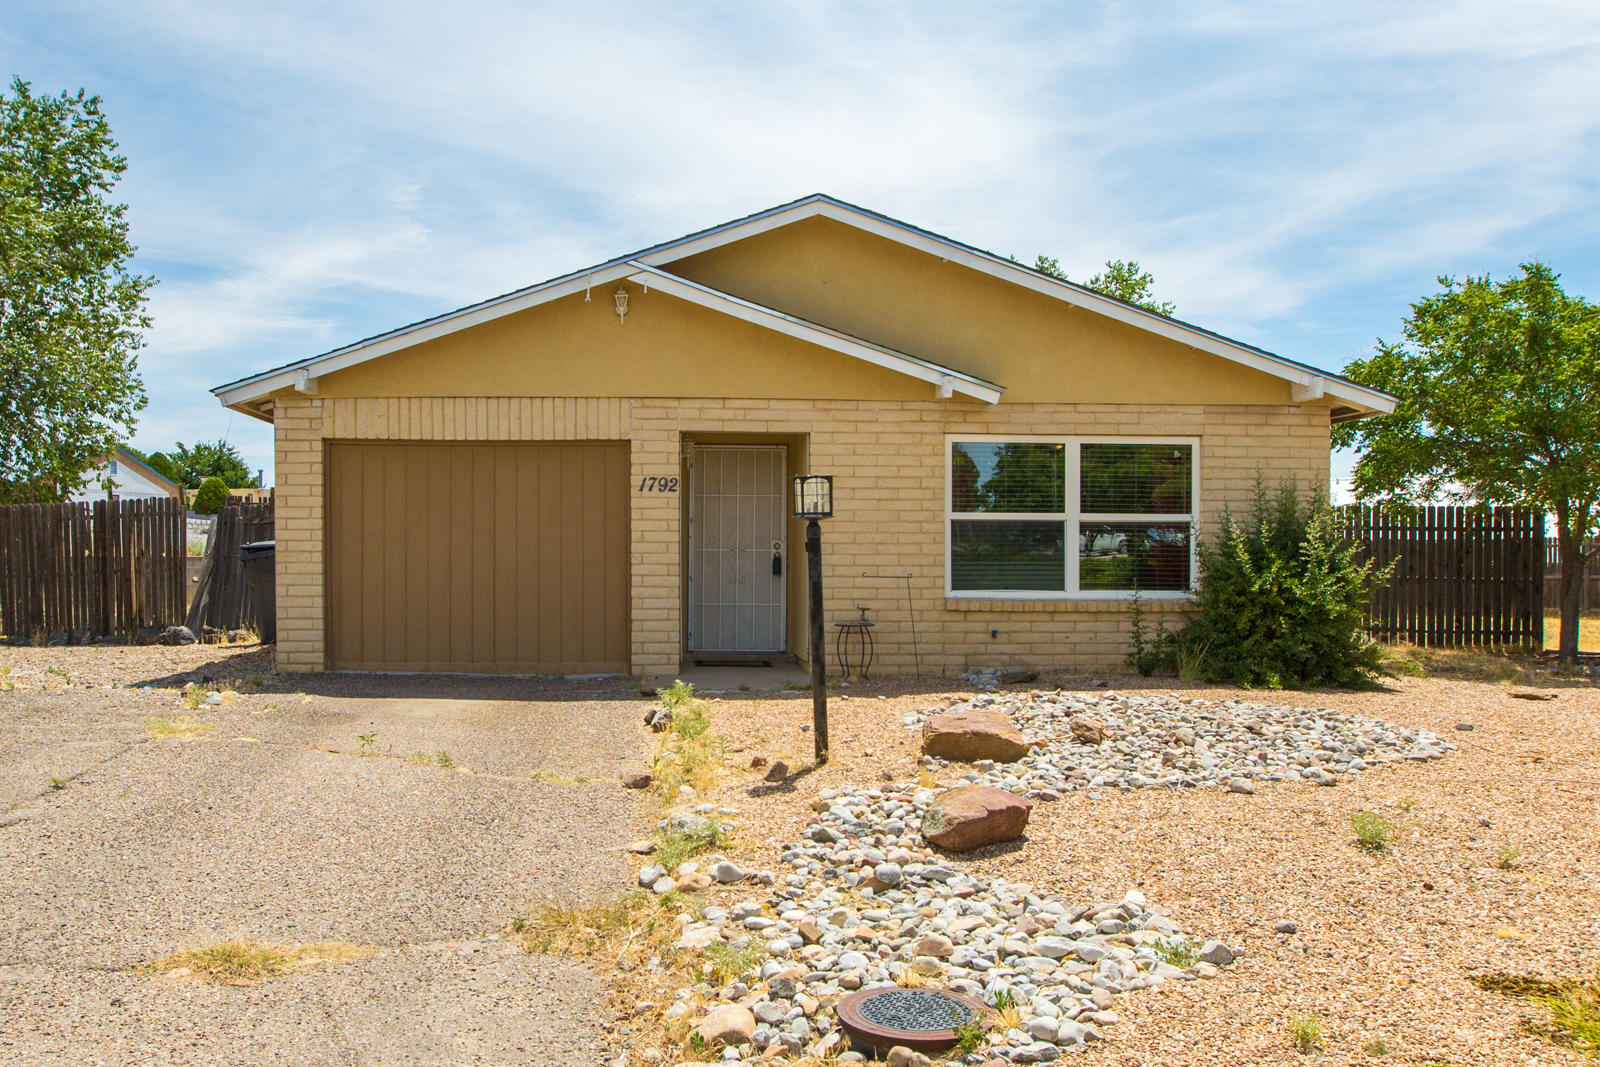 This well-maintained home is equipped with a one car garage, installed dishwasher, electric stove & refrigerator. Conveniently located near restaurants, shopping and grocery stores. Schedule a showing today, don't miss out on this great property!